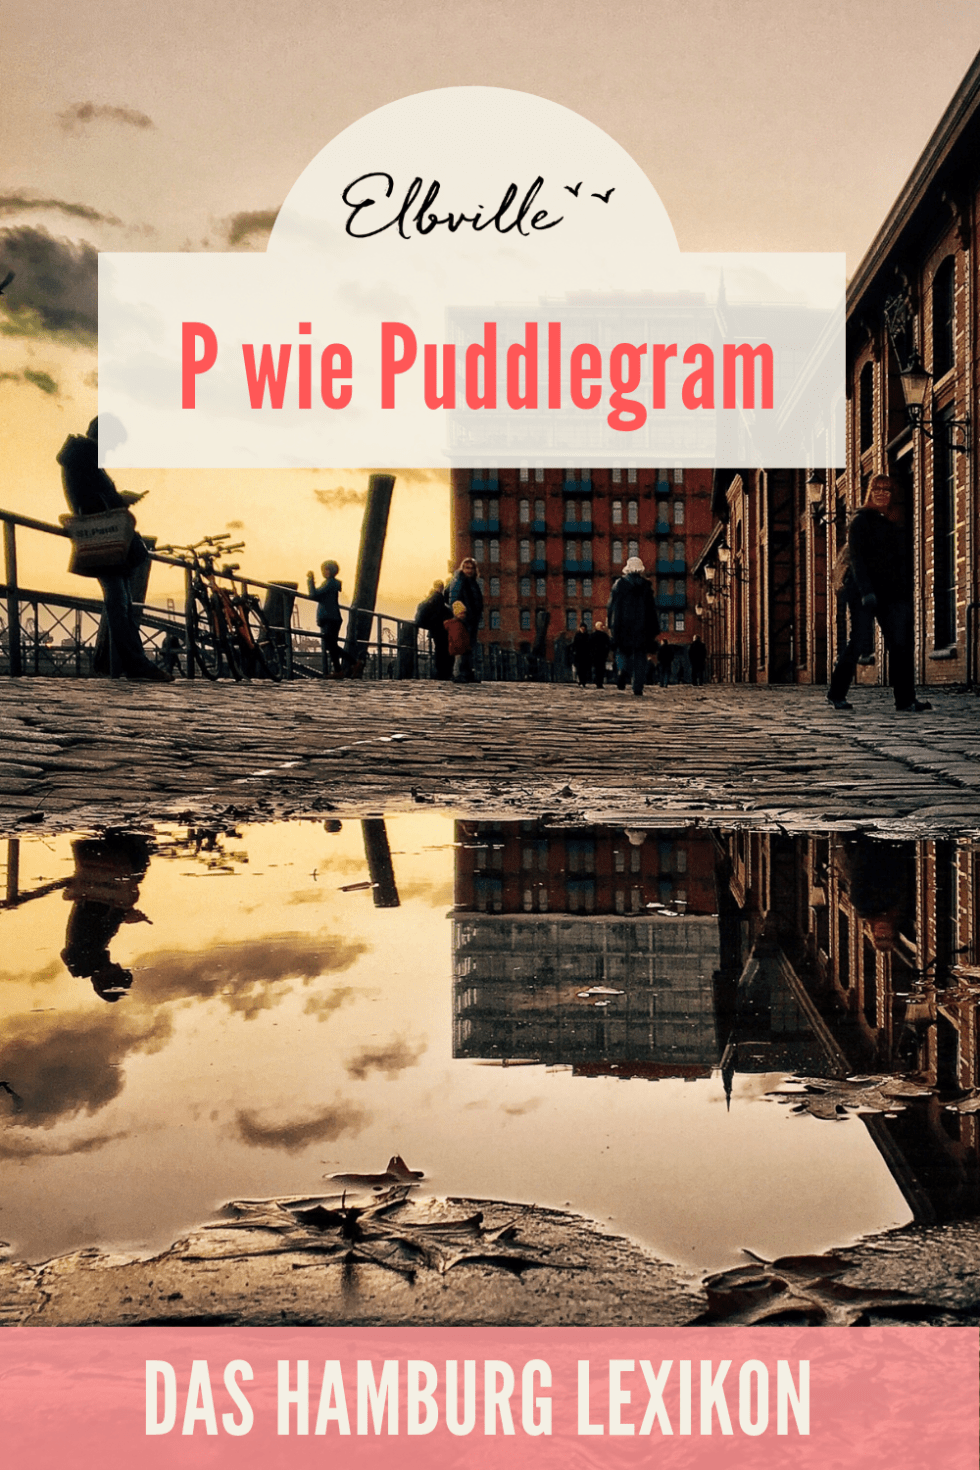 P Wie Puddlegram